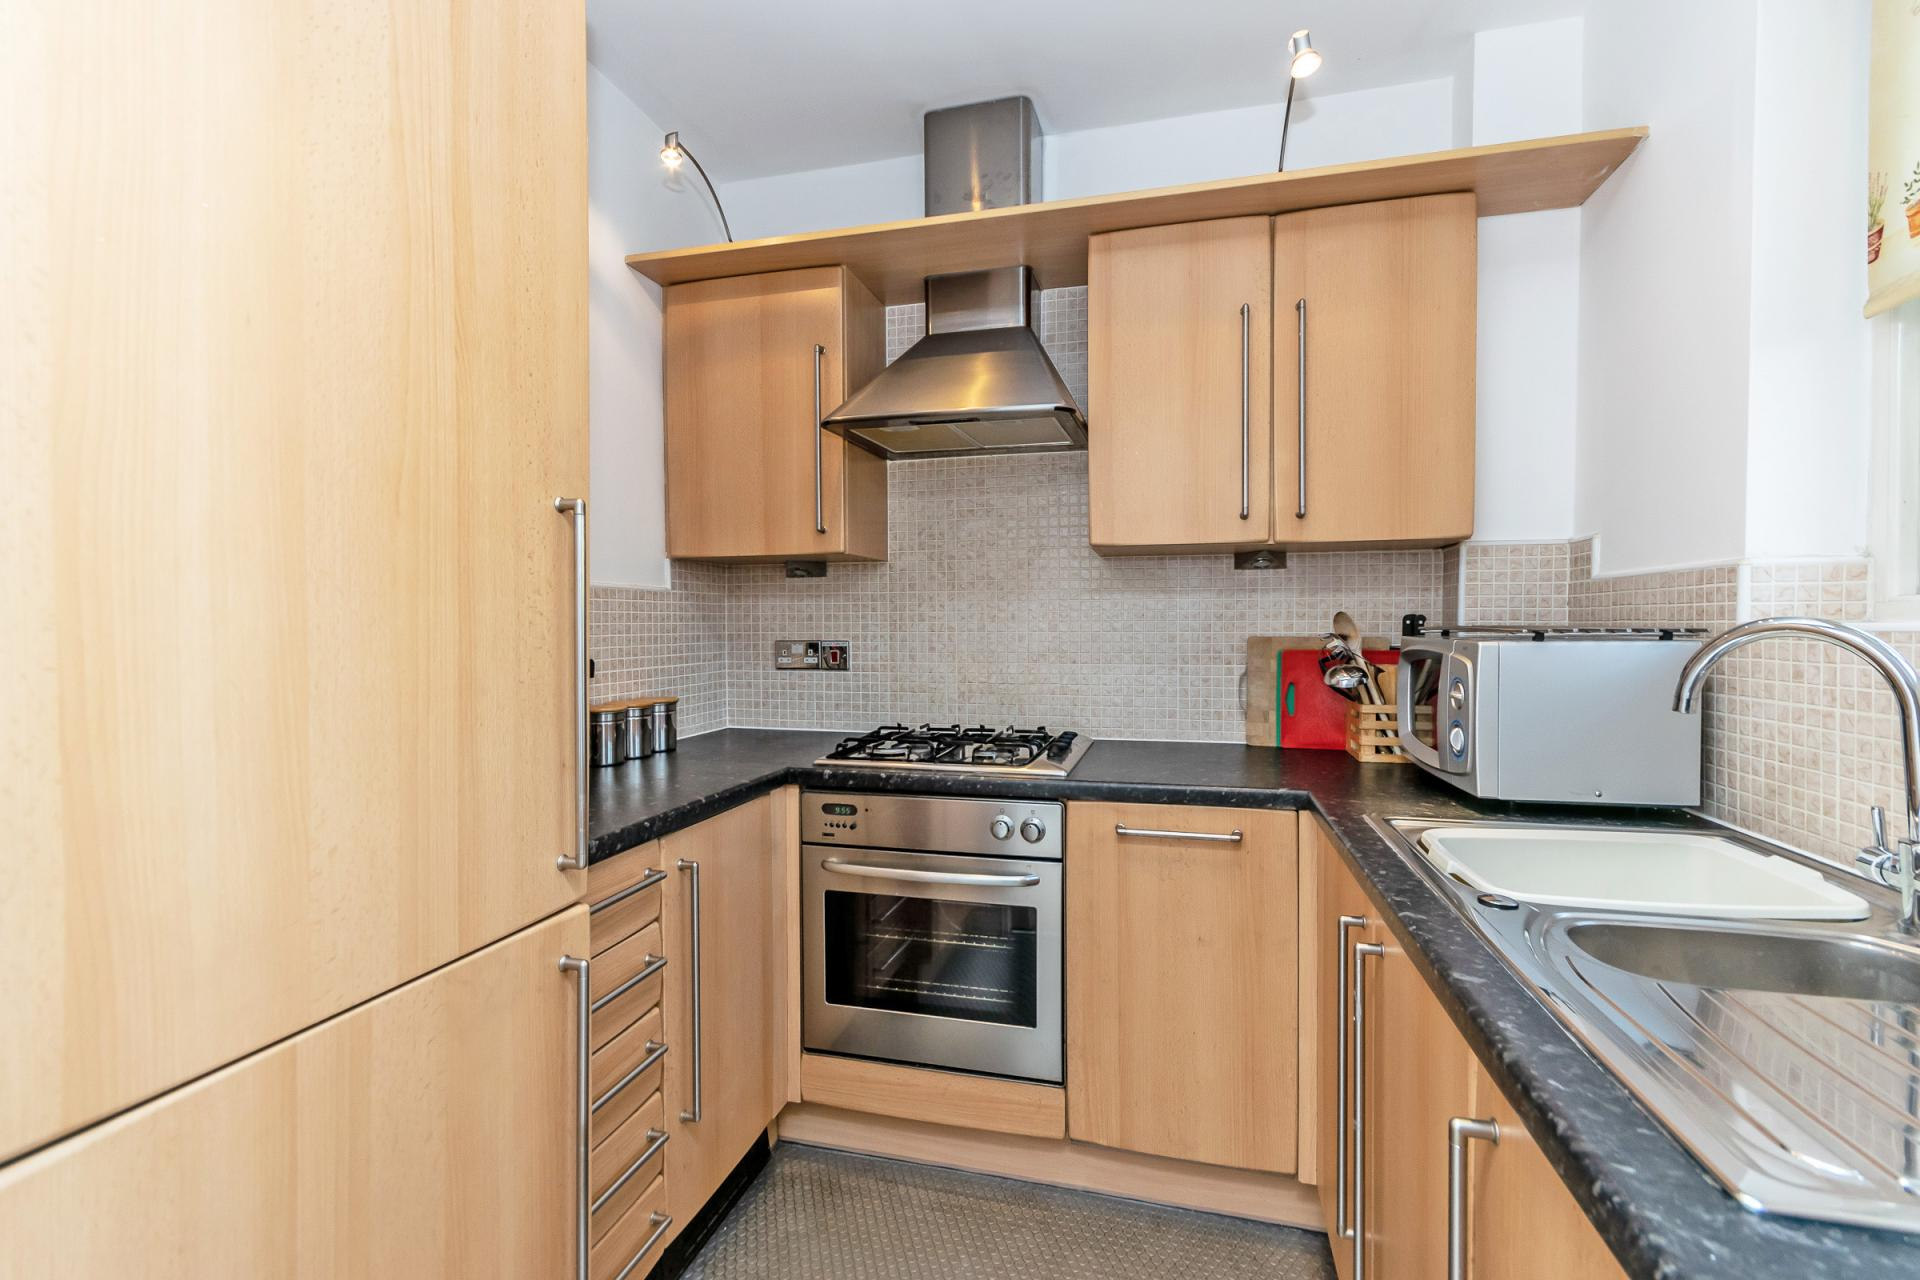 Kitchen at Tower View Apartment - Citybase Apartments